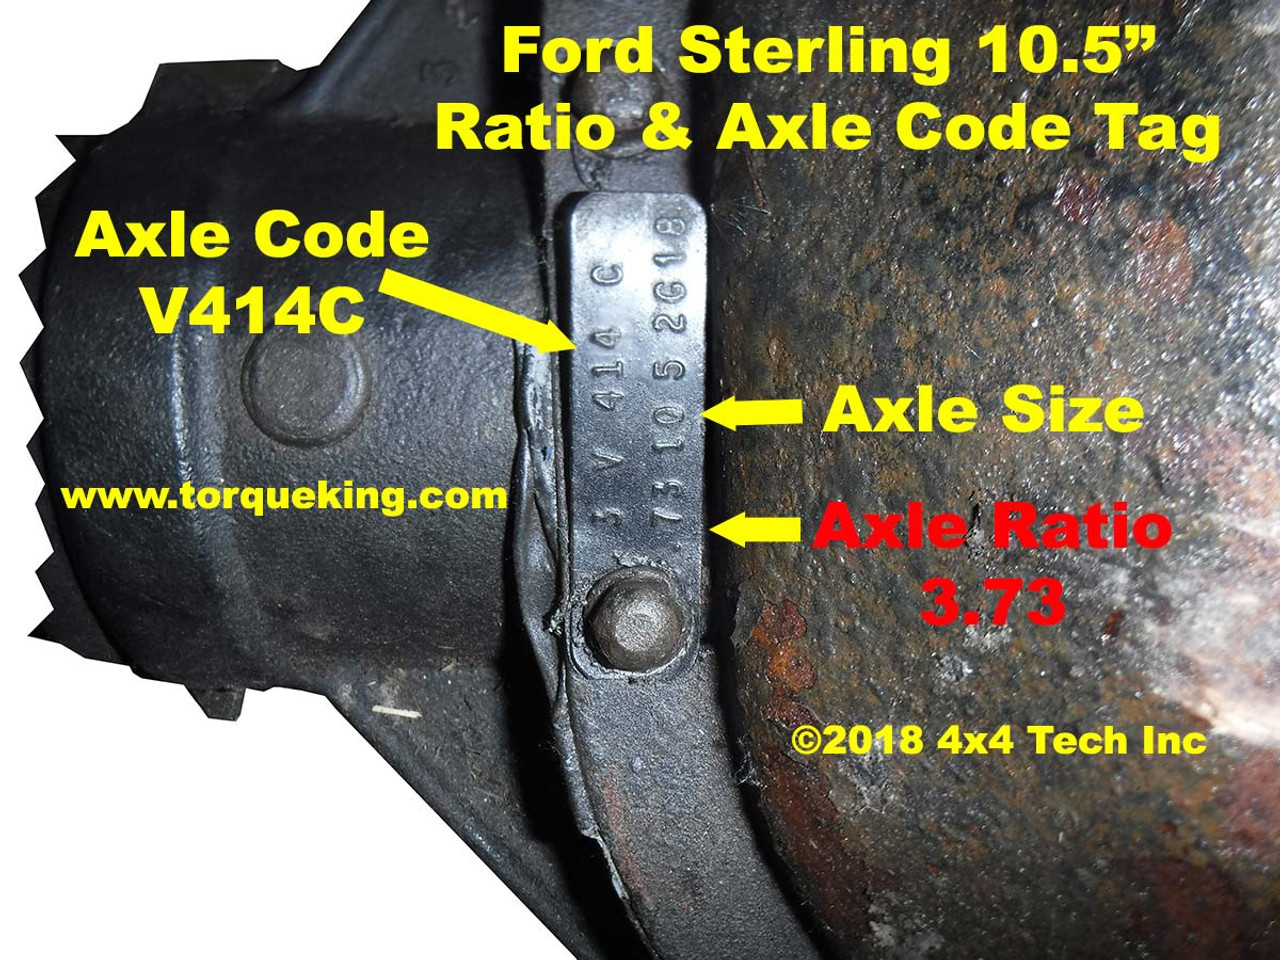 Hqdefault as well B Entyq Wk Kgrhqyoknuew Opvz Bmyvgwu W together with Zfs in addition F Drive Shaft furthermore V ire R C. on ford f 250 transfer case fluid